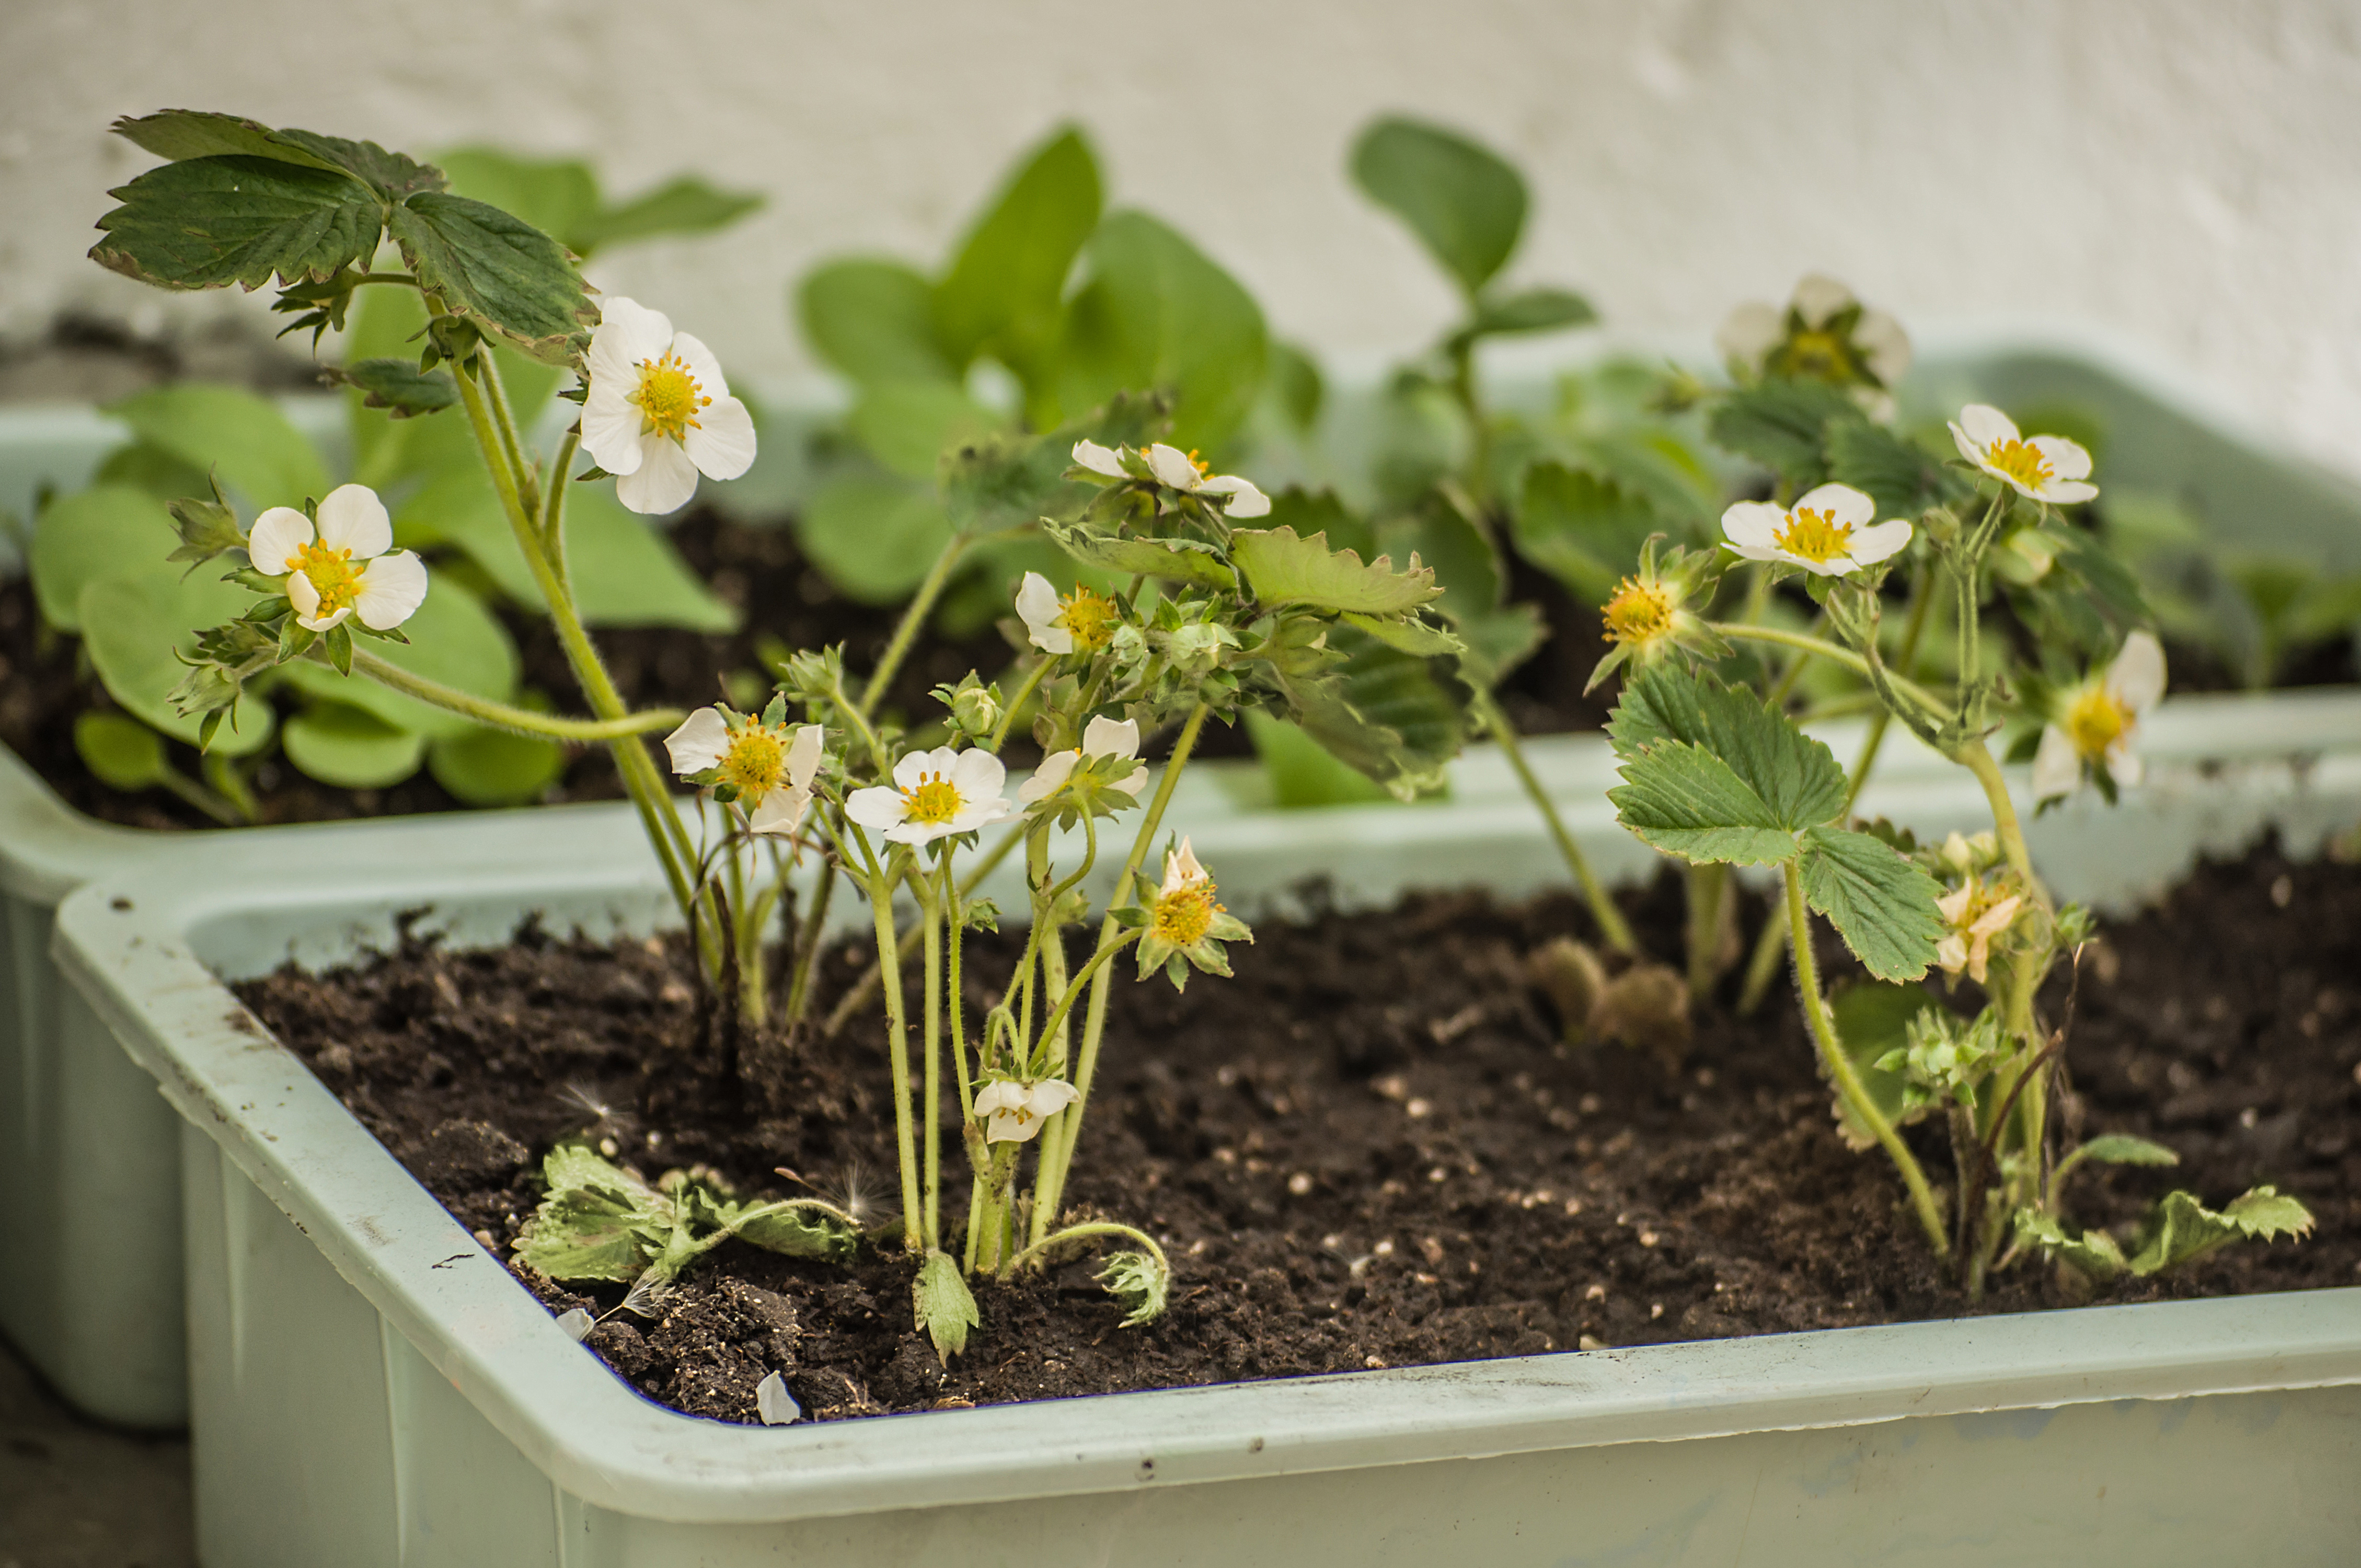 Homemade garden beds of blooming strawberries placed on a balcony.